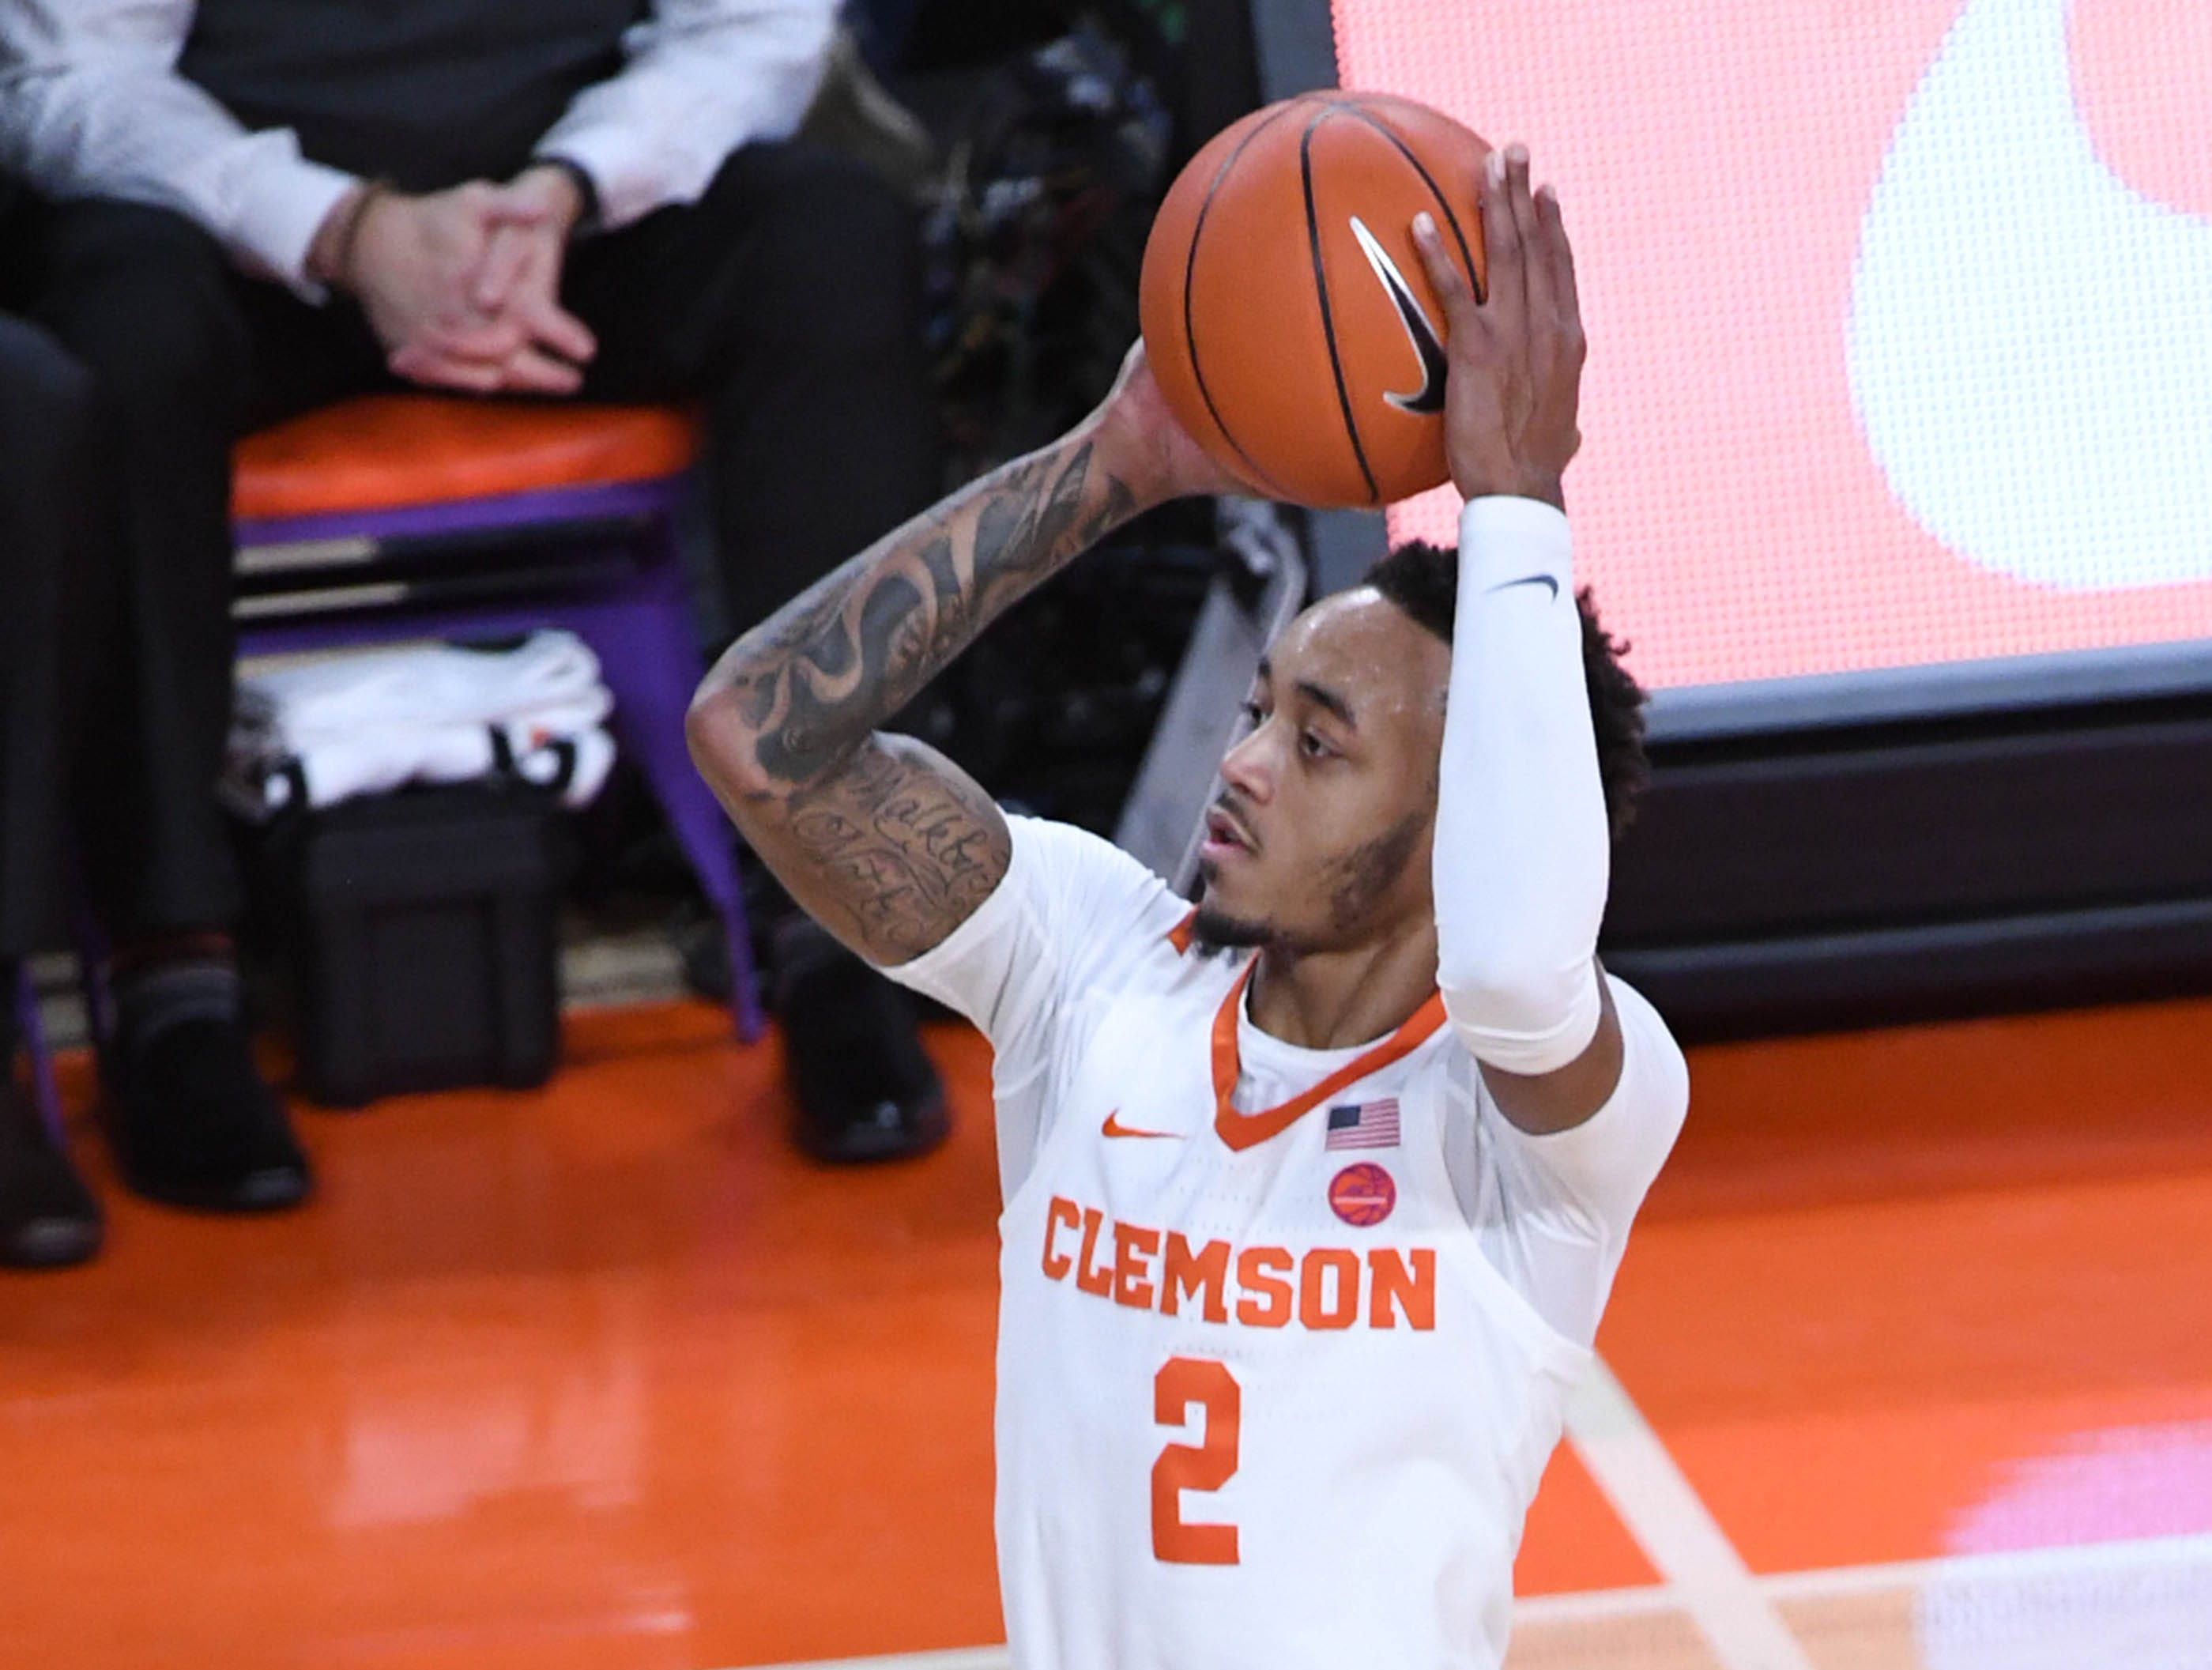 Clemson guard Marcquise Reed (2) shoots near Syracuse guard Tyus Battle(25) during the first half in Littlejohn Coliseum in Clemson Saturday, March 9, 2019.